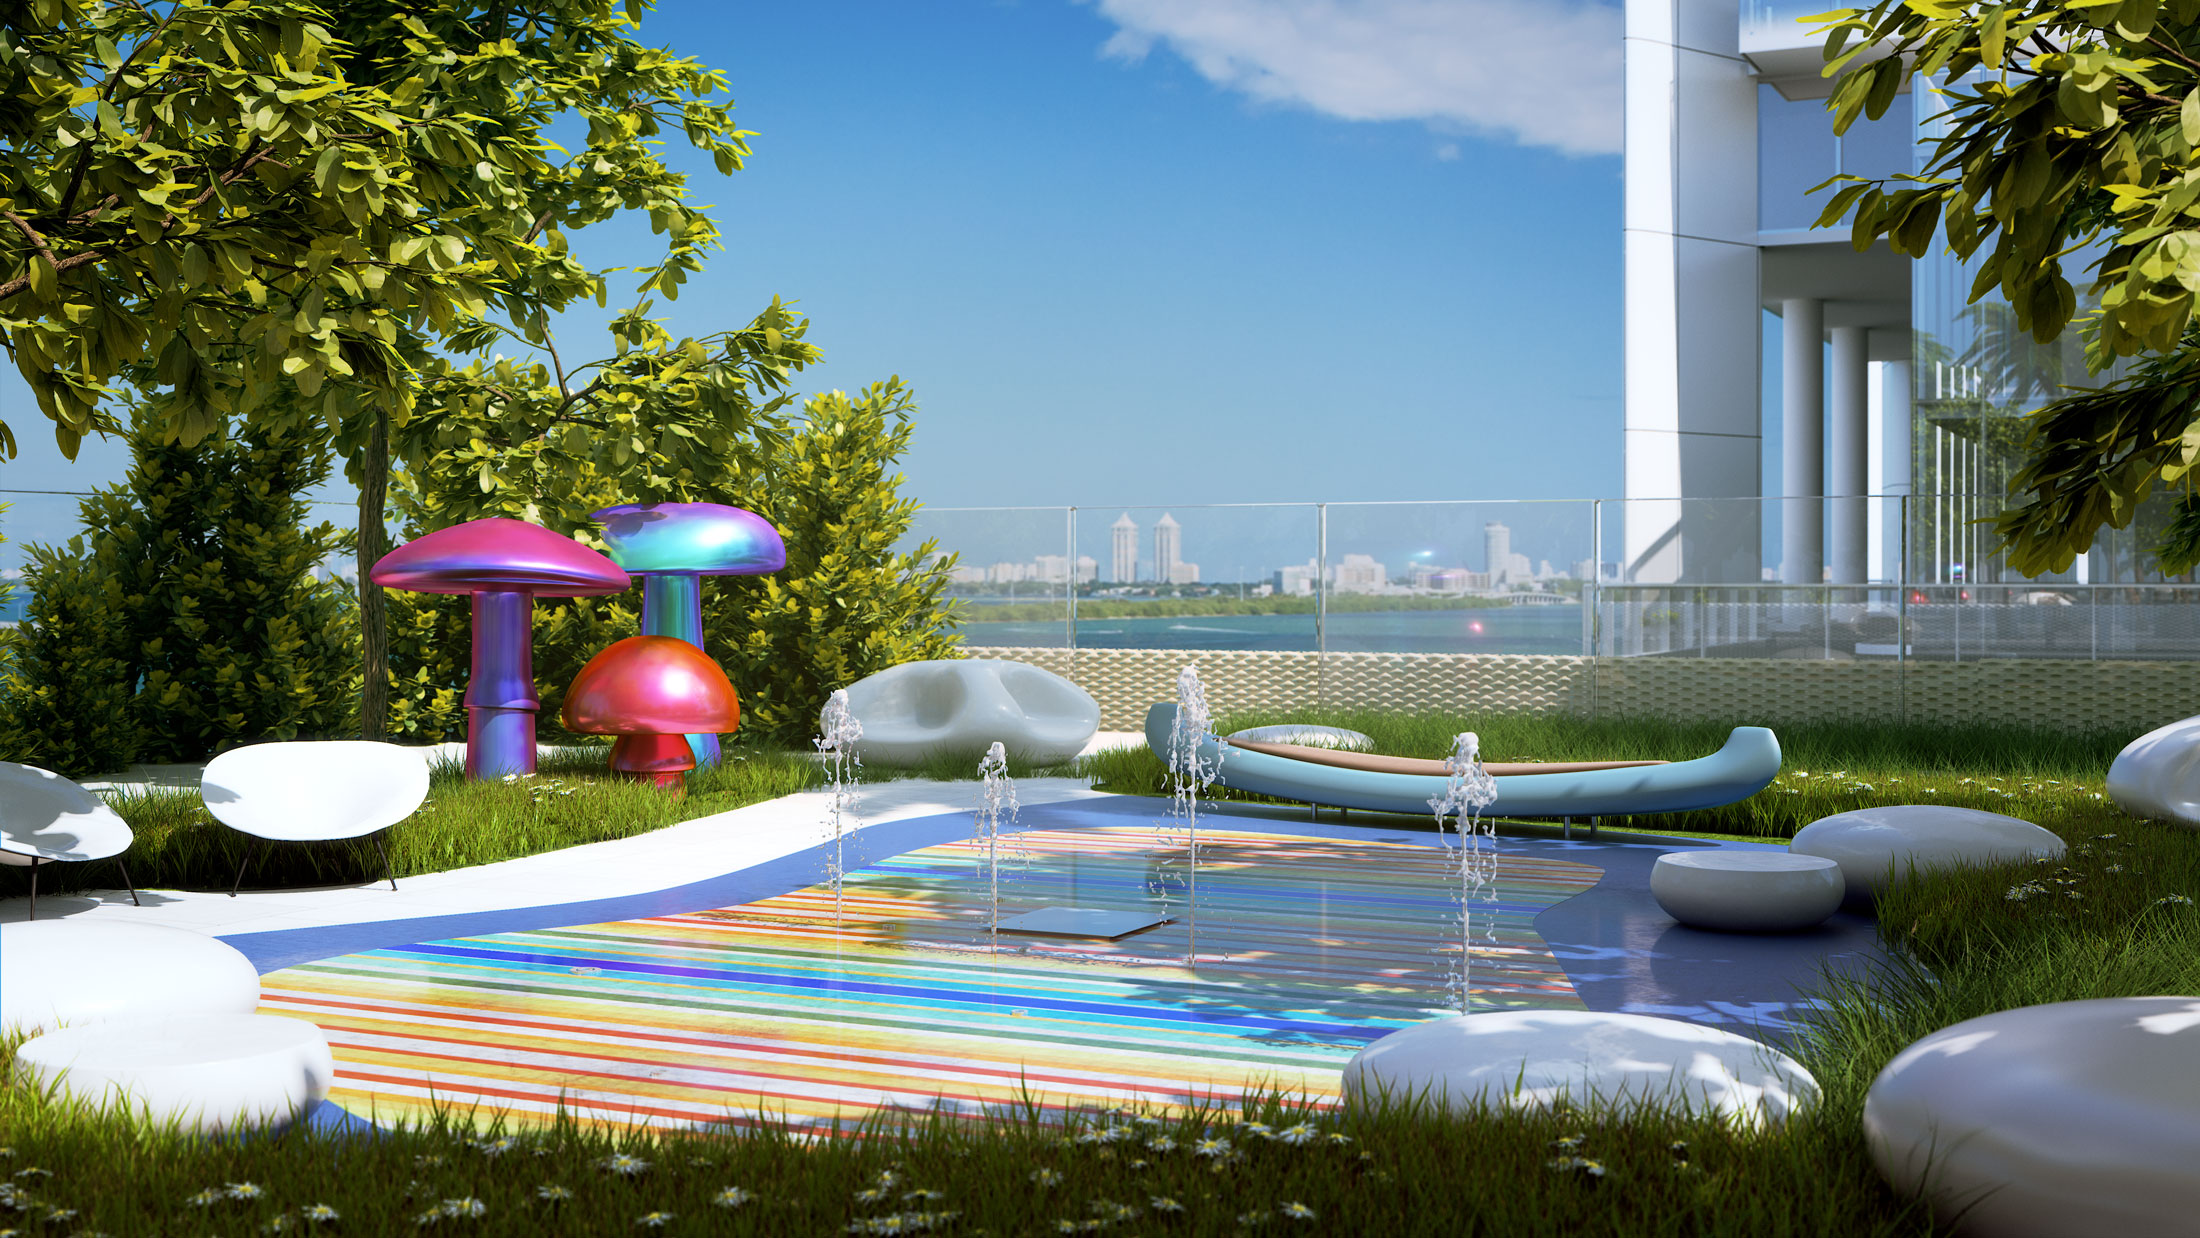 Architectural Rendering of the kids pool of the Missoni Baia project located in Miami, Florida